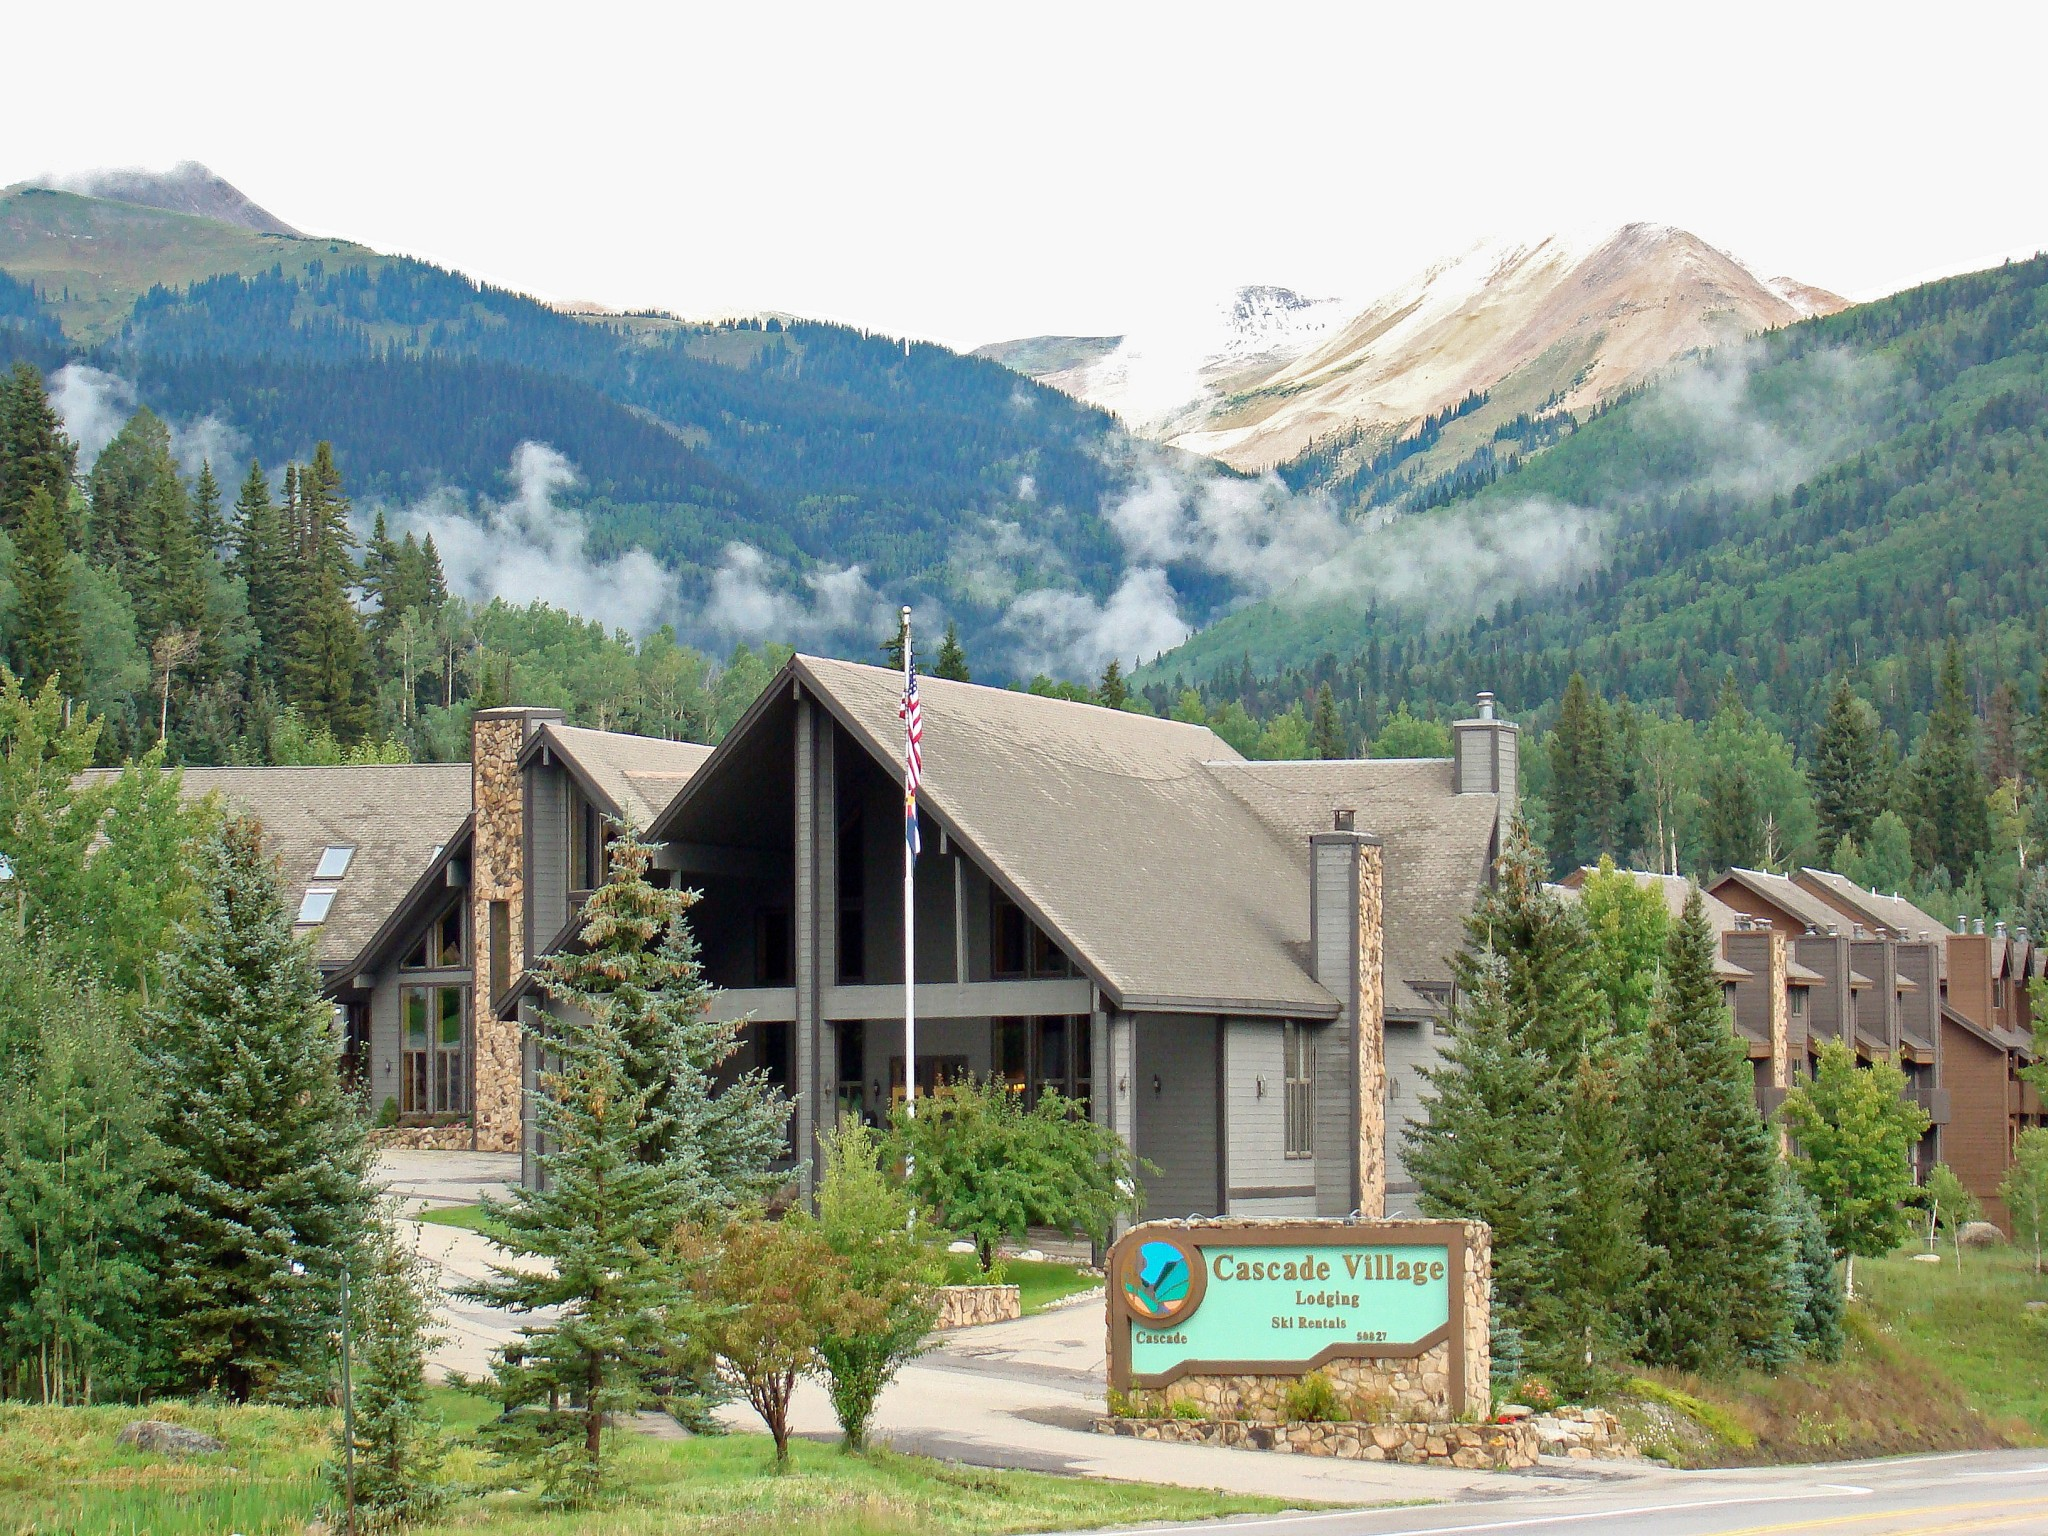 Cascade Village Vacation Rentals Reservations | Check